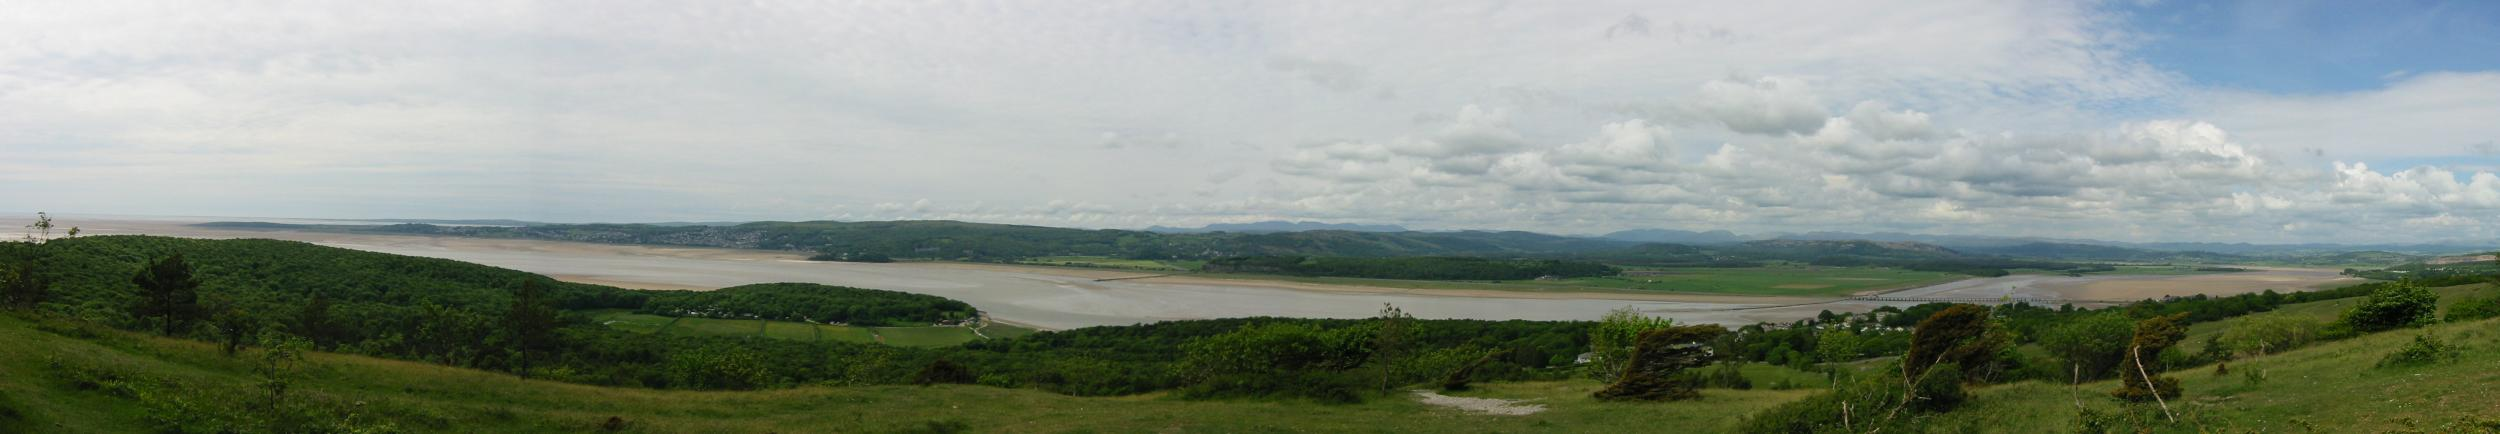 Northerly panorama from Arnside Knott view point